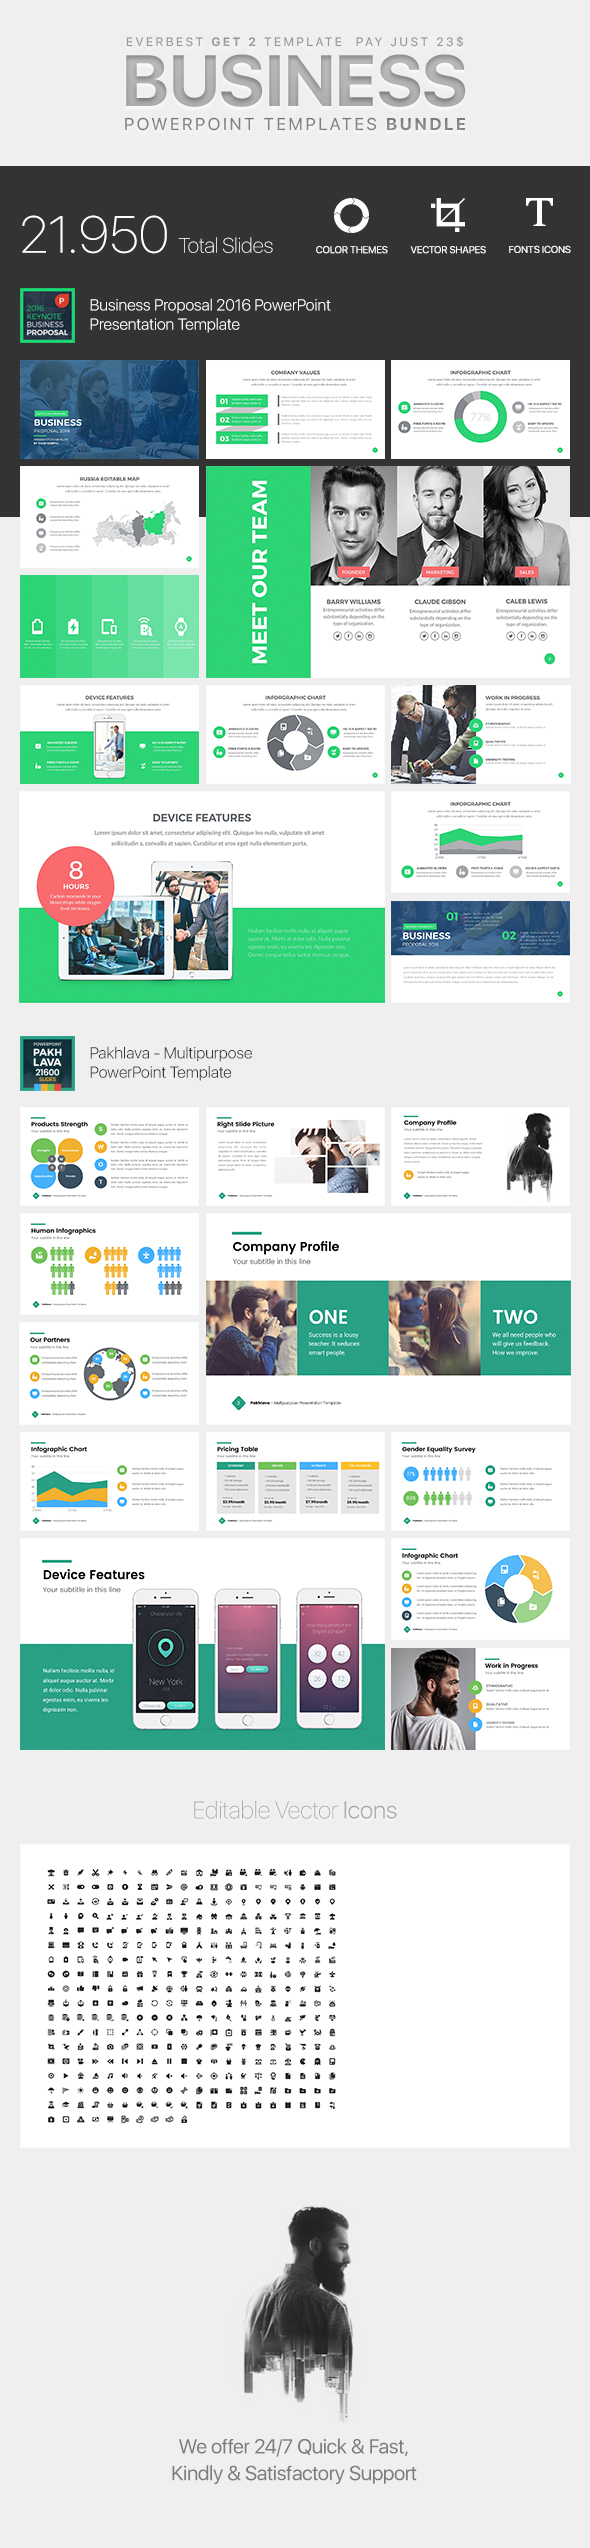 Business Bundle PowerPoint Template 2 in 1